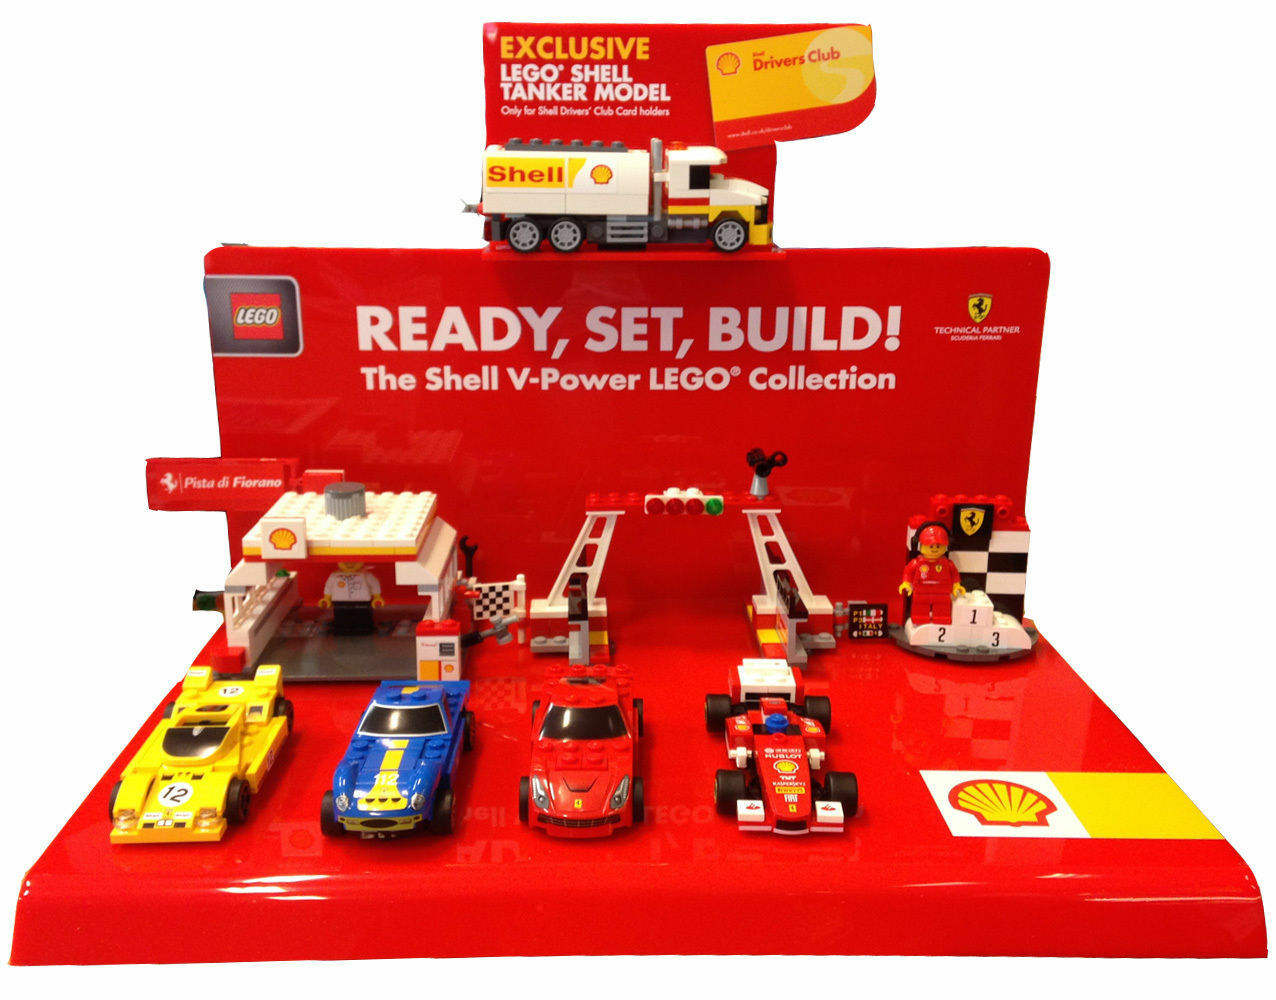 Lego Shell  Ferrari  Finish Line & Podium Toy Set very rare collectors item set2